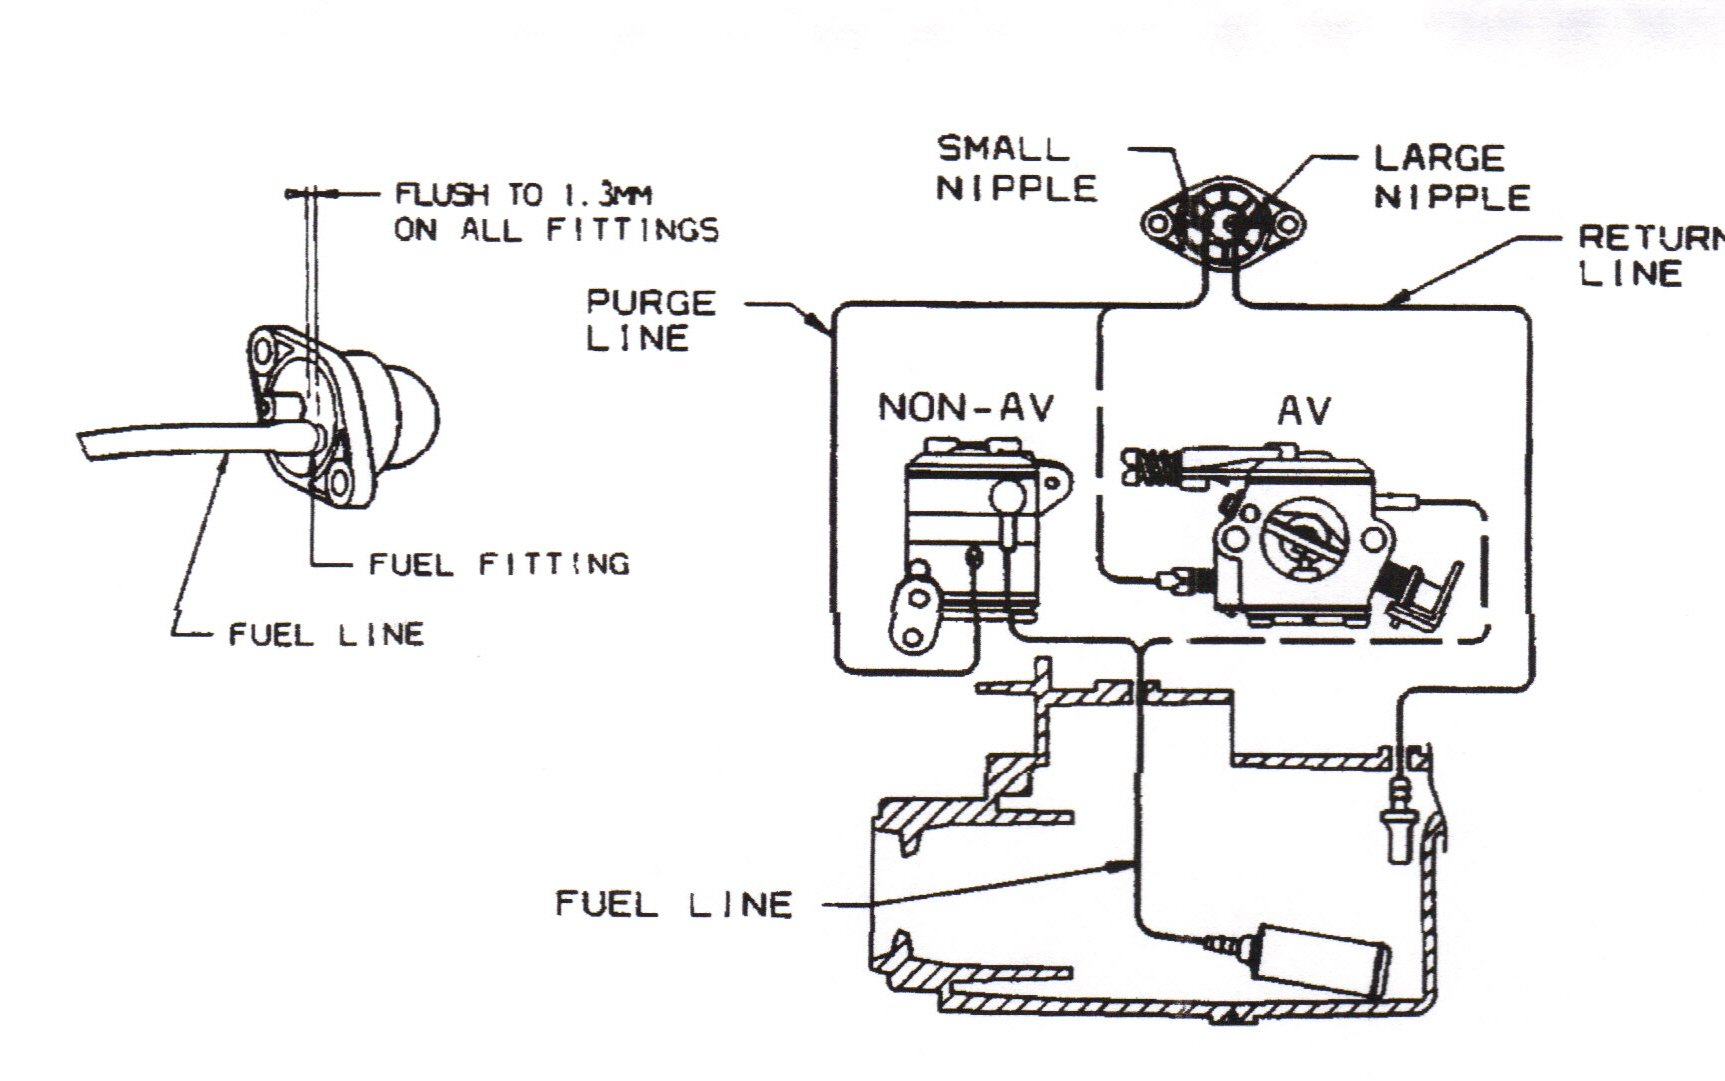 craftsman lawn tractor wiring schematic with 5v400 Husqvarna 338xpt Chainsaw Need Fuel Line Diagram Cannot on Small Engine Starter Solenoid Wiring Diagram in addition Wiper Linkage Bushings 71047 additionally 49829 How Install  er Meter Gauge additionally Schematic Of Pto Tractor moreover 3047890.